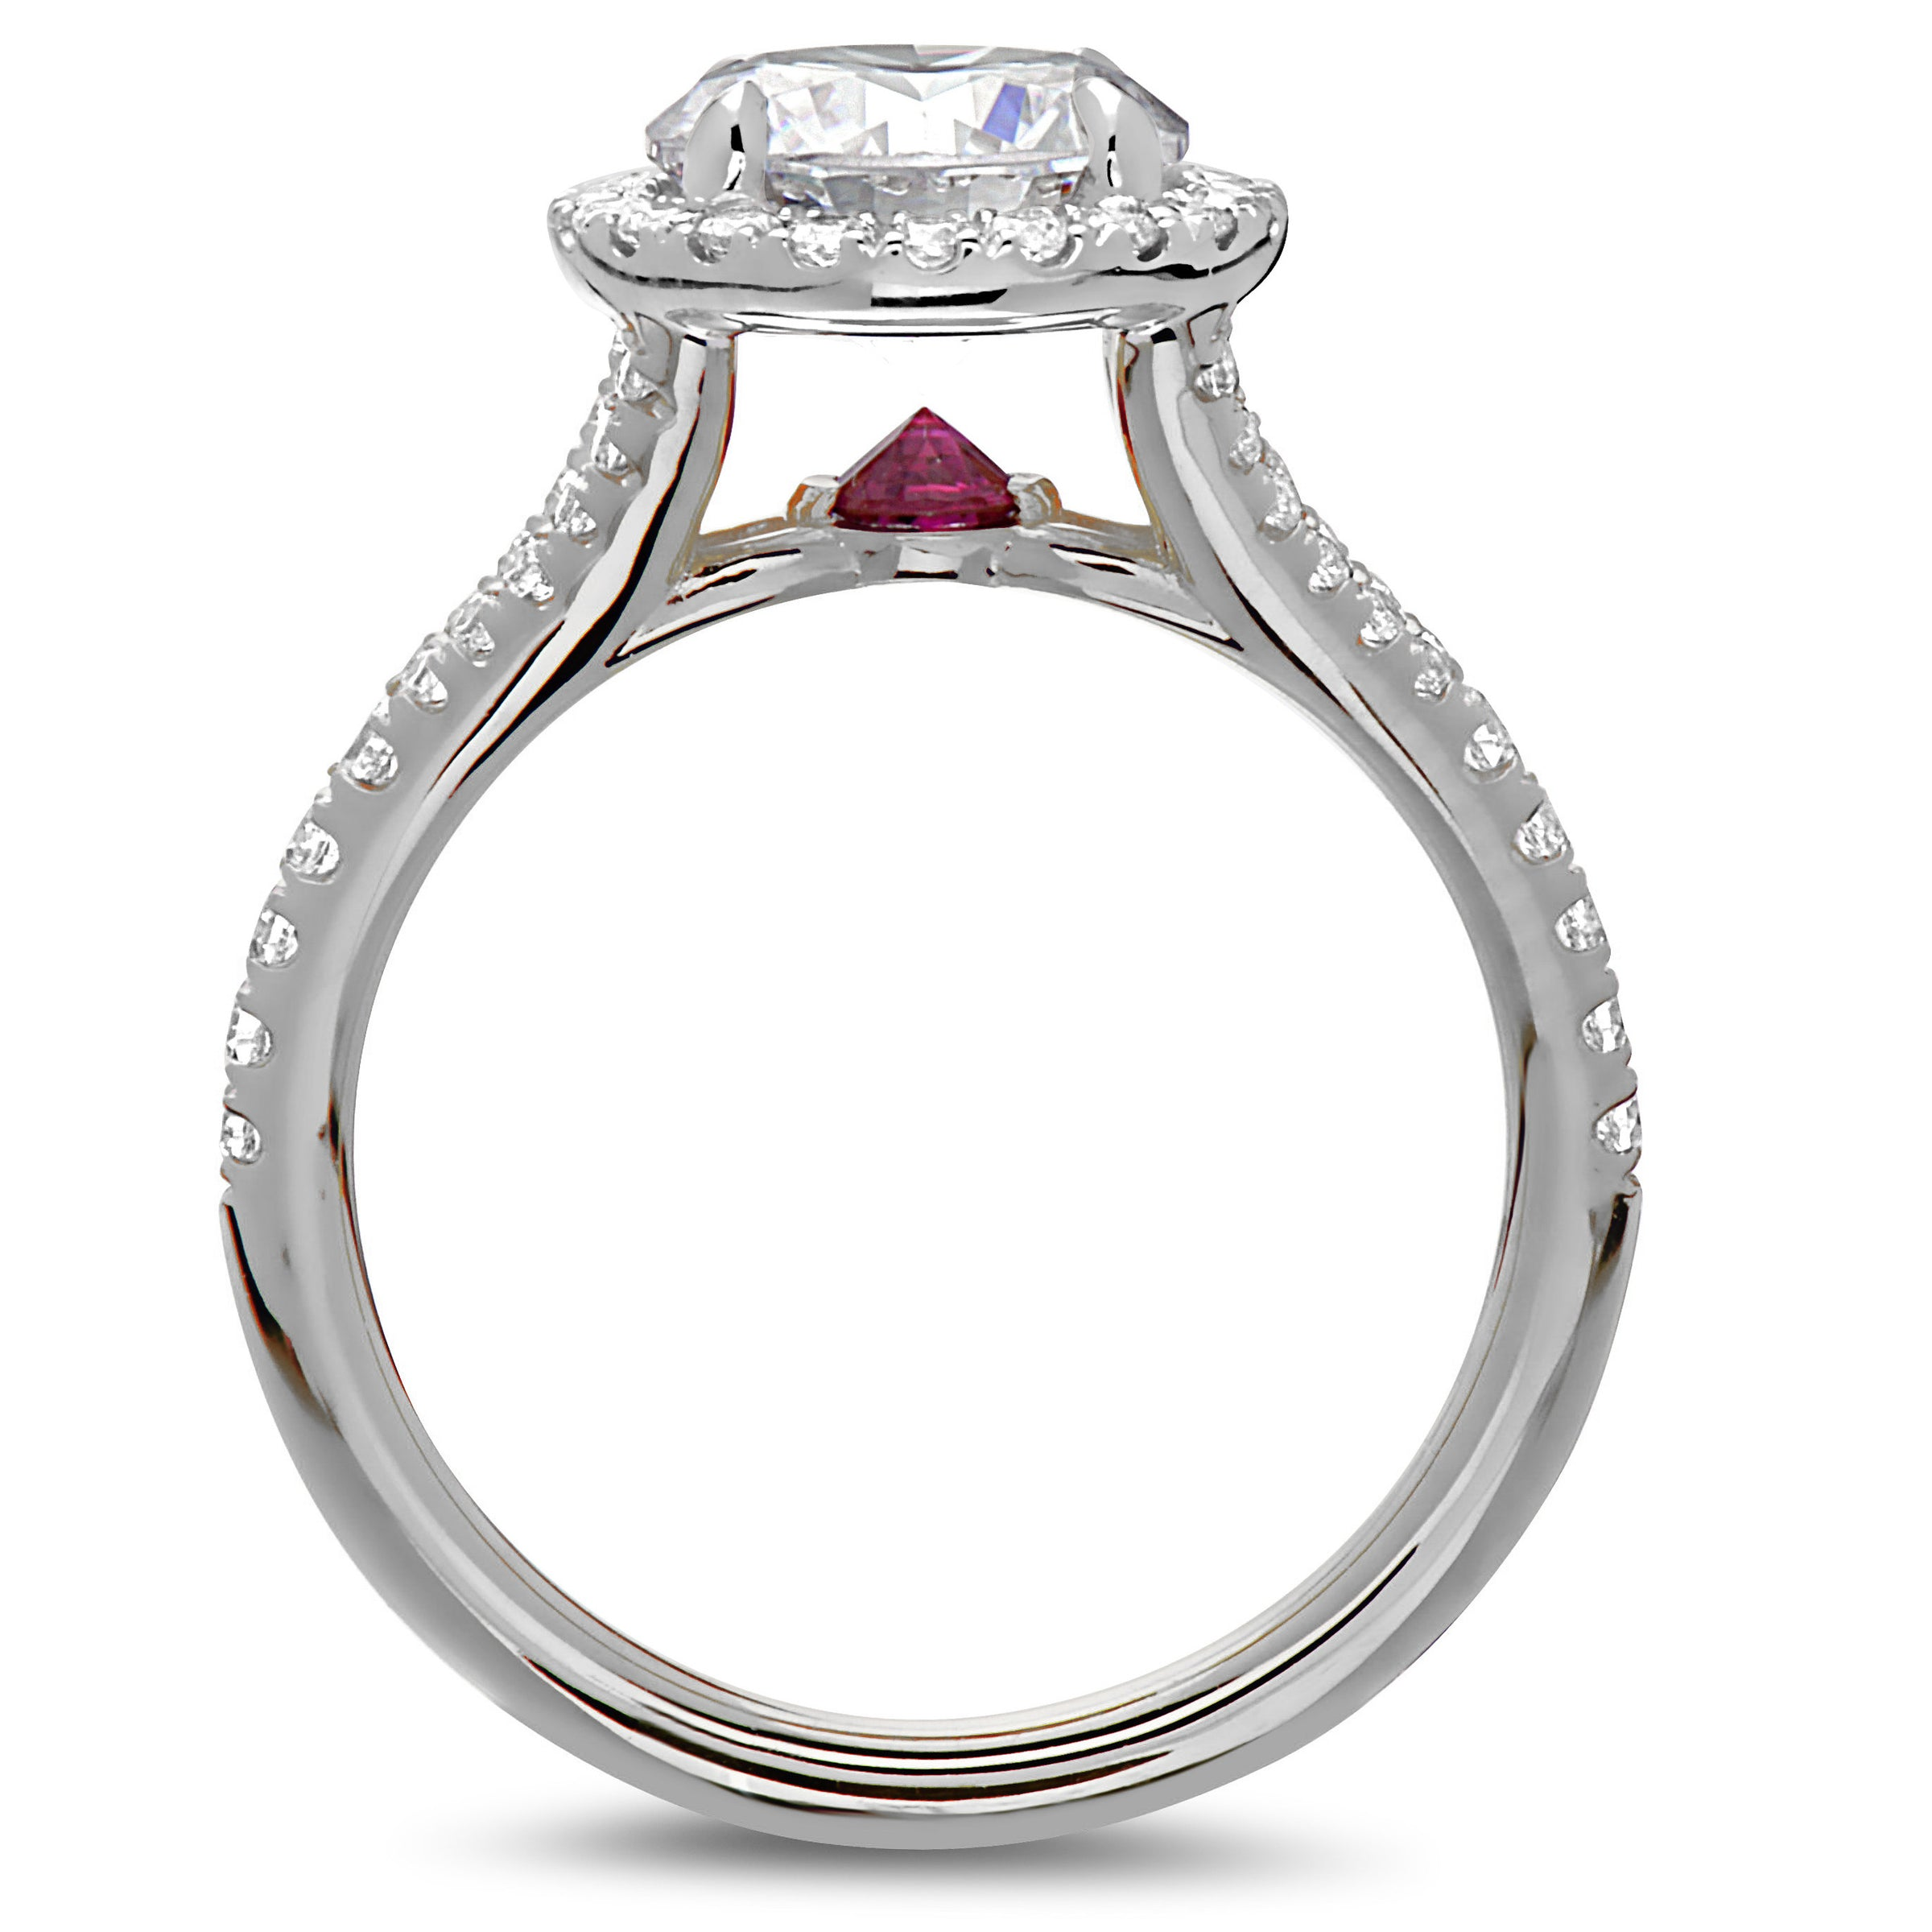 3ddffbe303b Point of Love Round Brilliant 2 Carat Diamond Halo Platinum Engagement Ring  with Ruby Split Shank